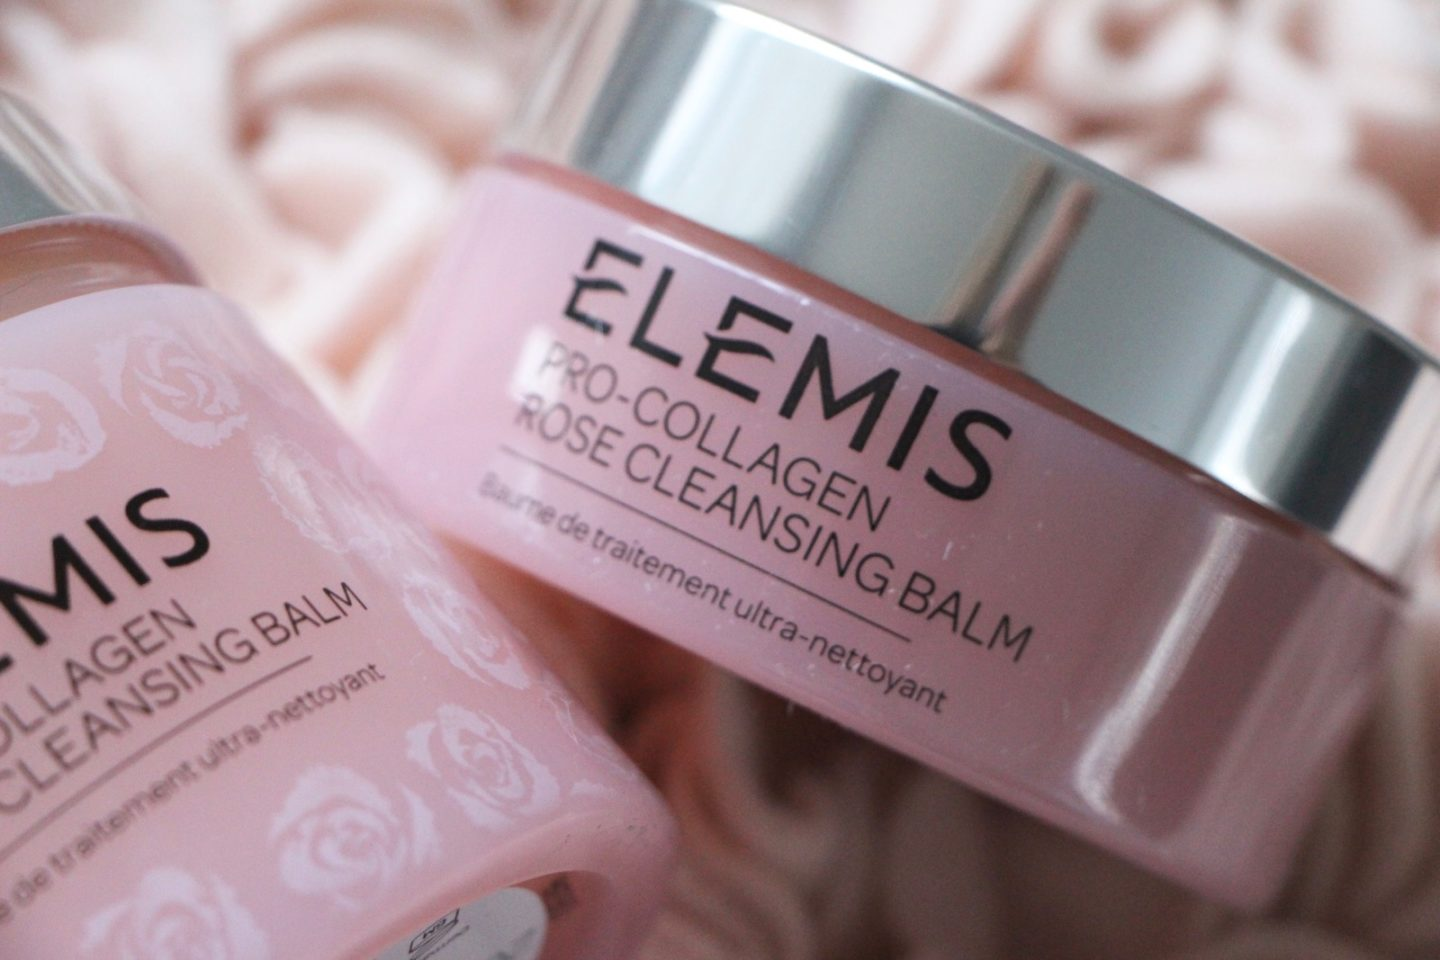 c65cbc1f9a Skincare Review: Elemis Pro-Collagen Rose Cleansing Balm | A Model ...